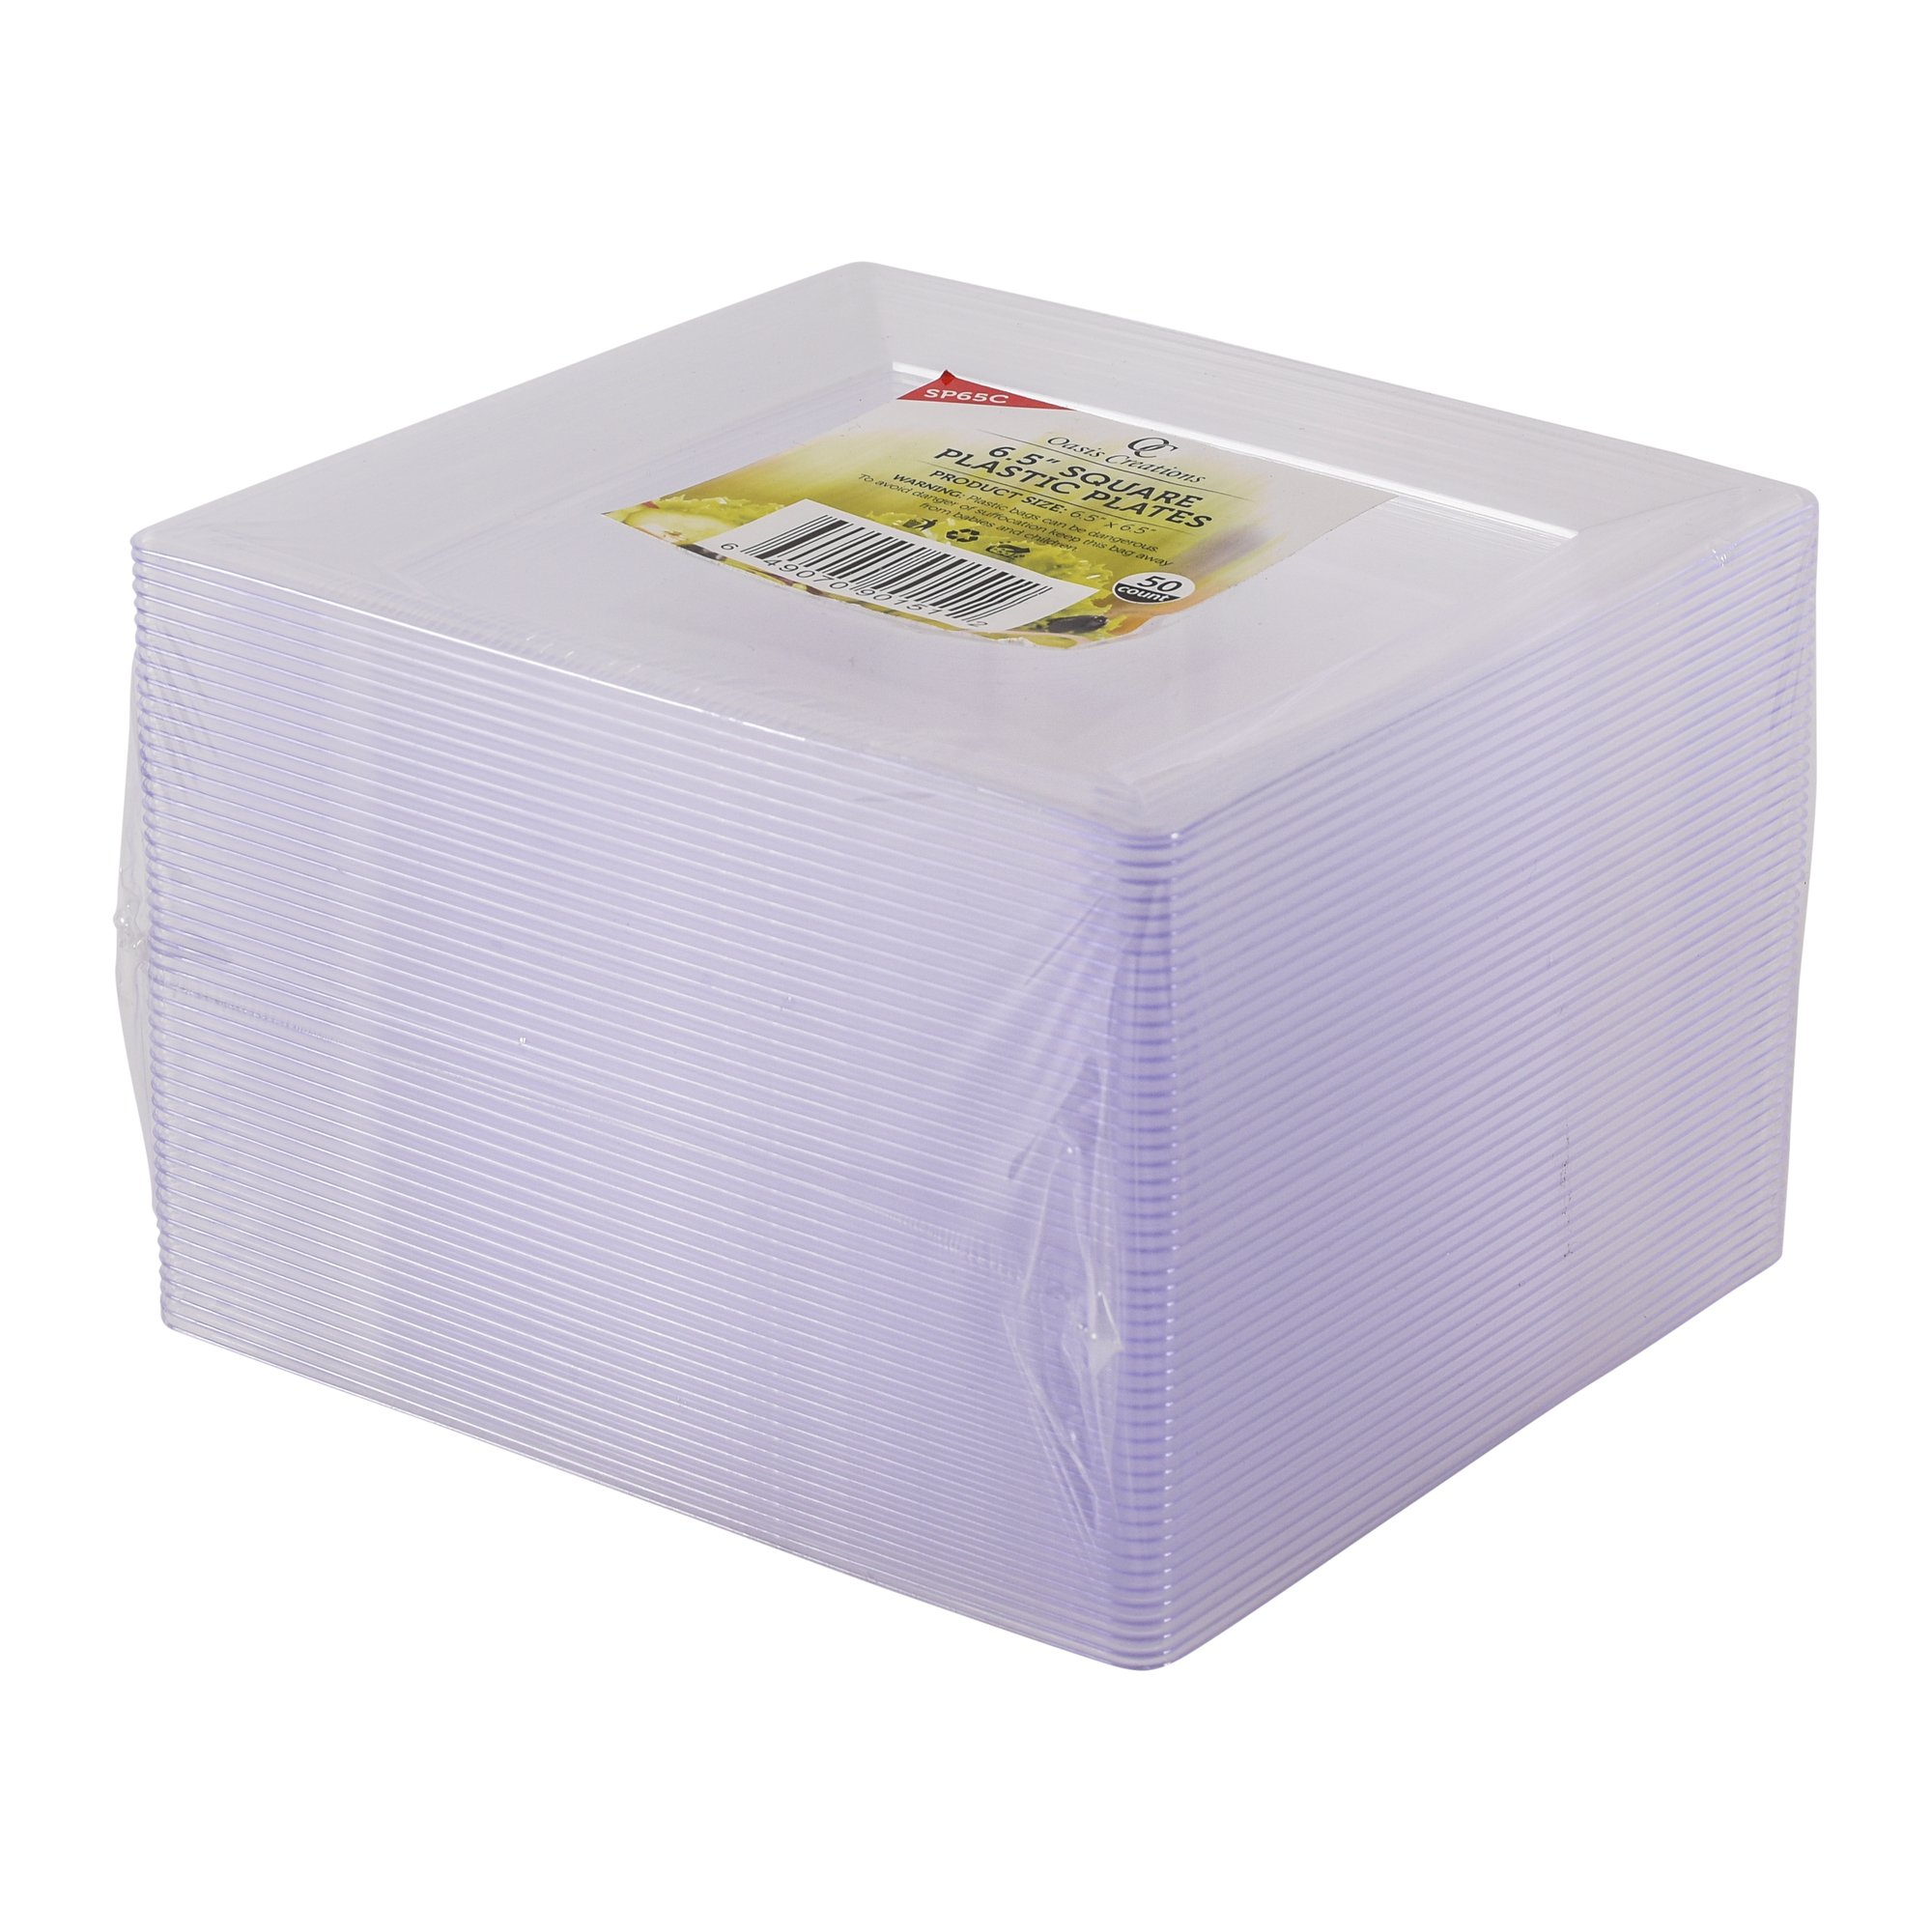 Clear Square Plates 50 x 6.5  Set By Oasis Creations - Hard Plastic - - Washable u0026 Reusable Case of 400  sc 1 st  Walmart.com & Clear Square Plates 50 x 6.5